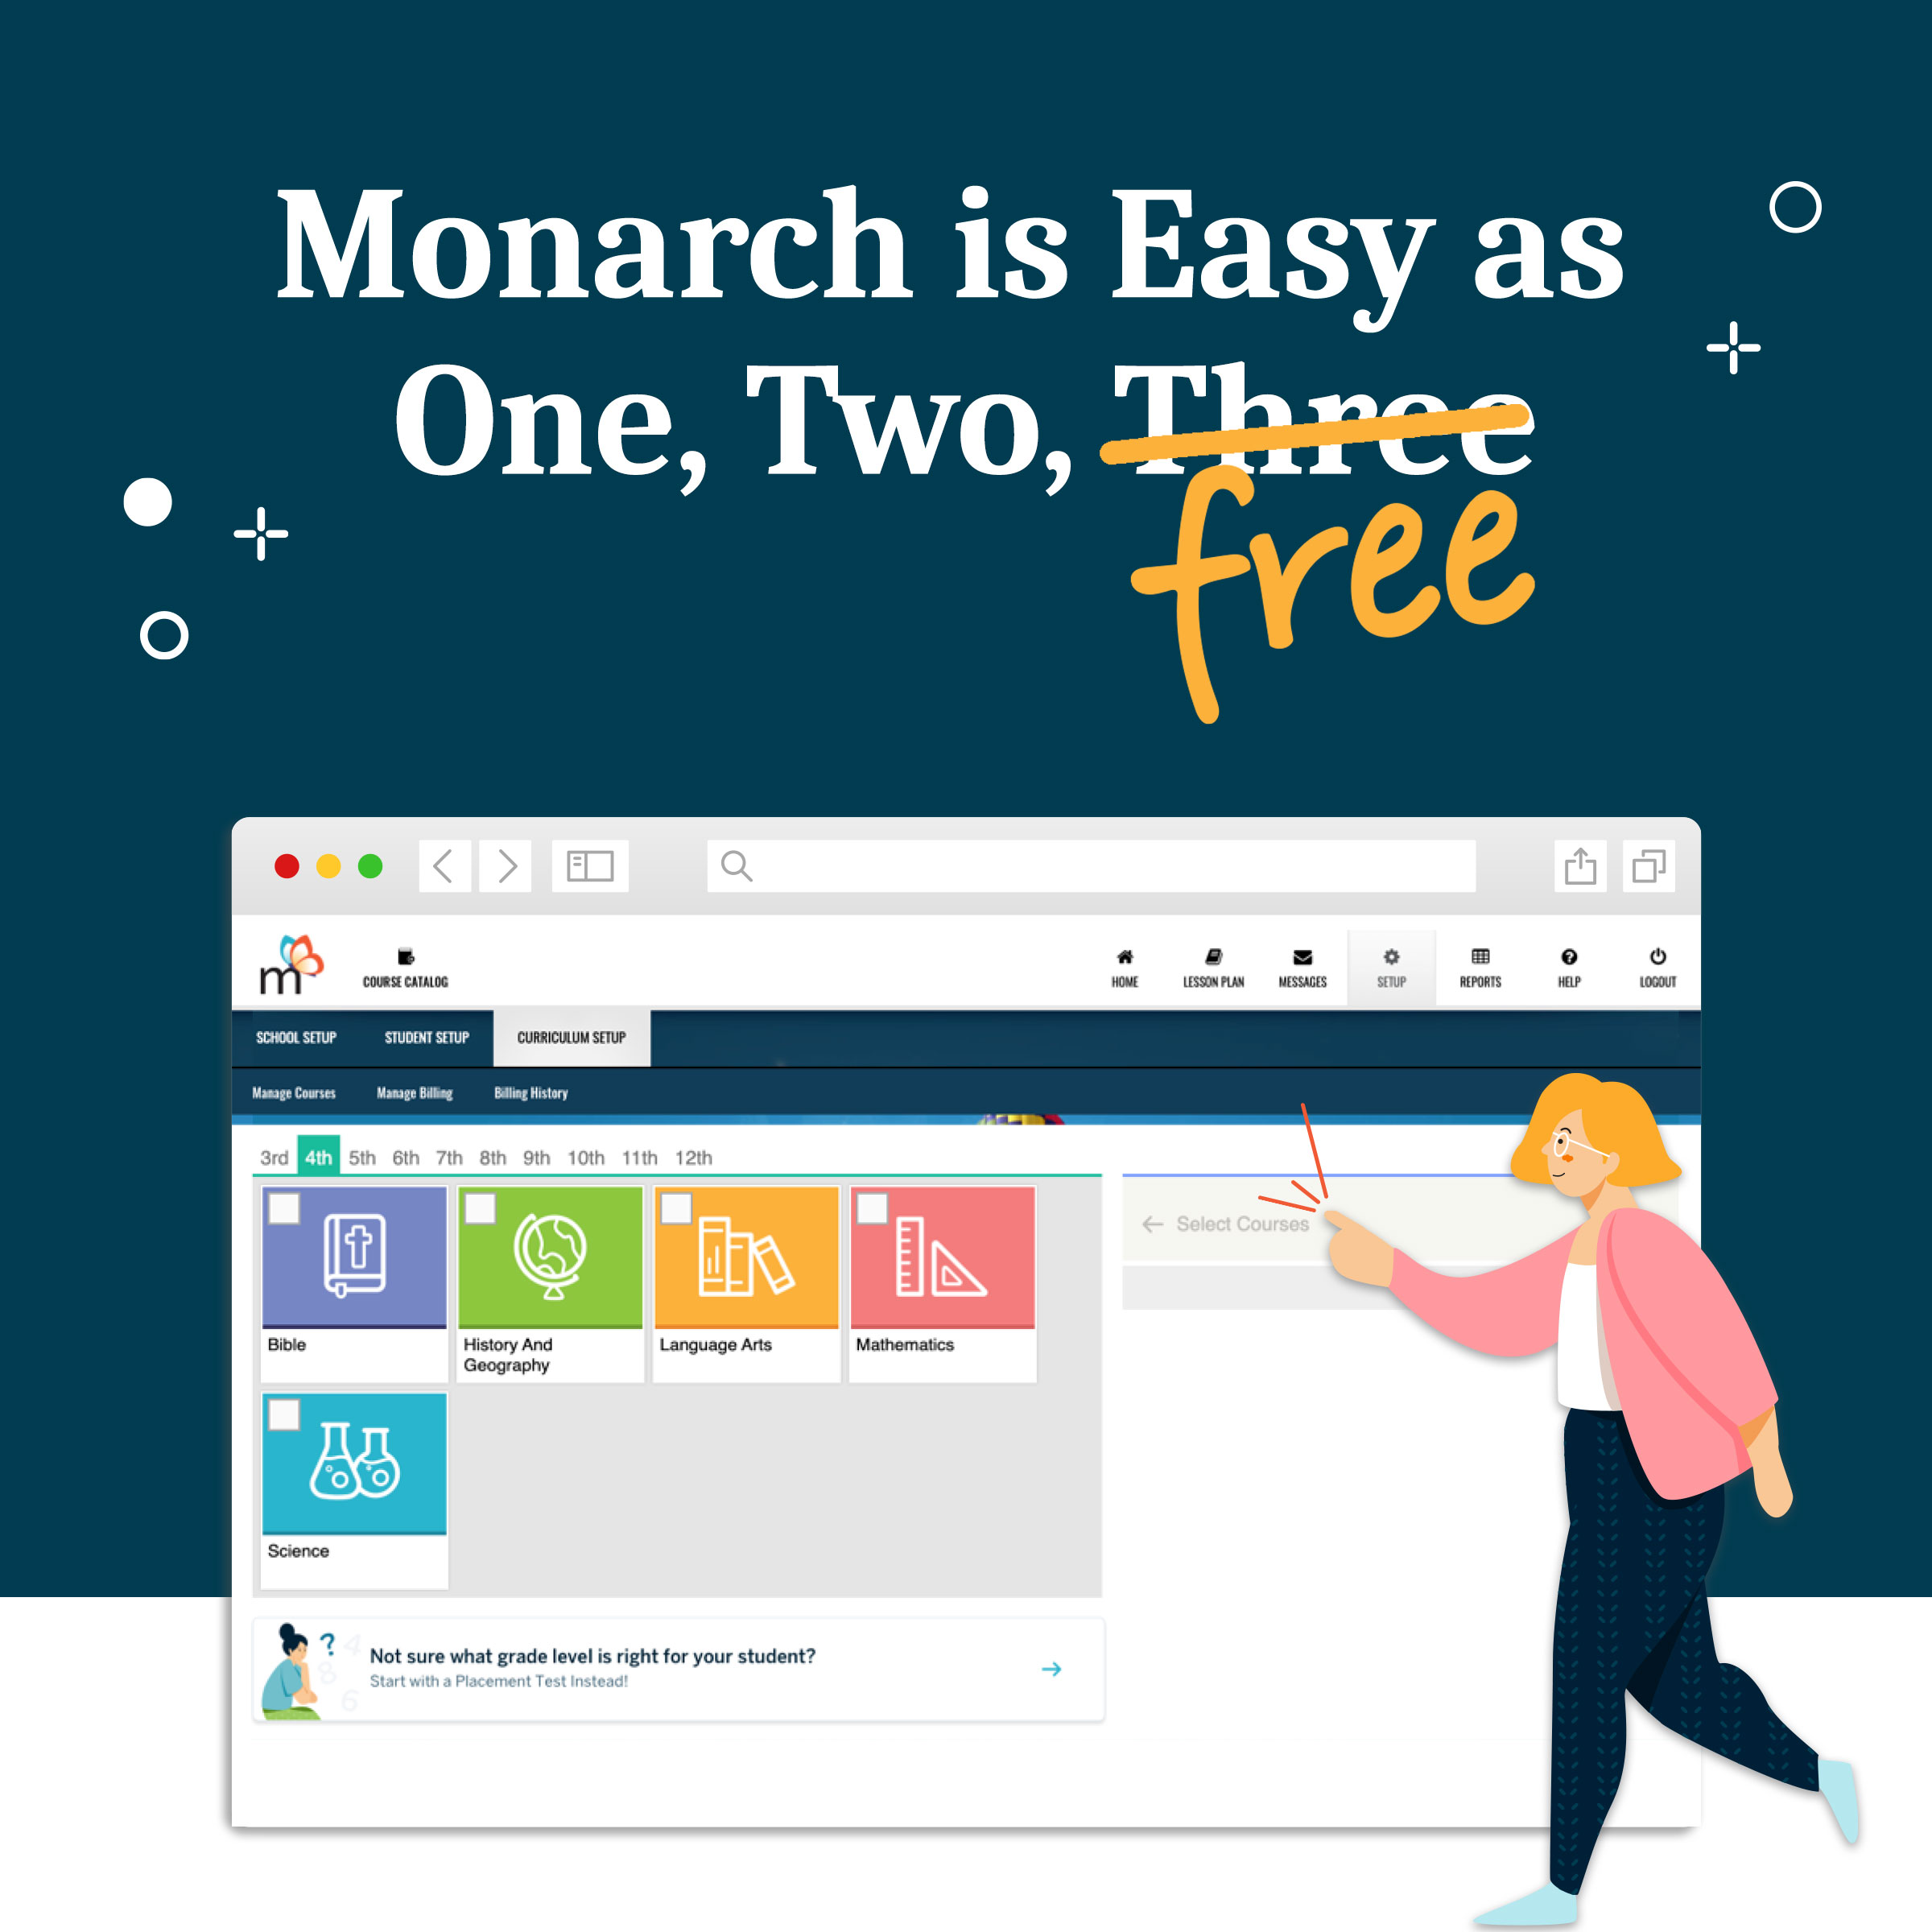 Monarch is Easy as One, Two, FREE